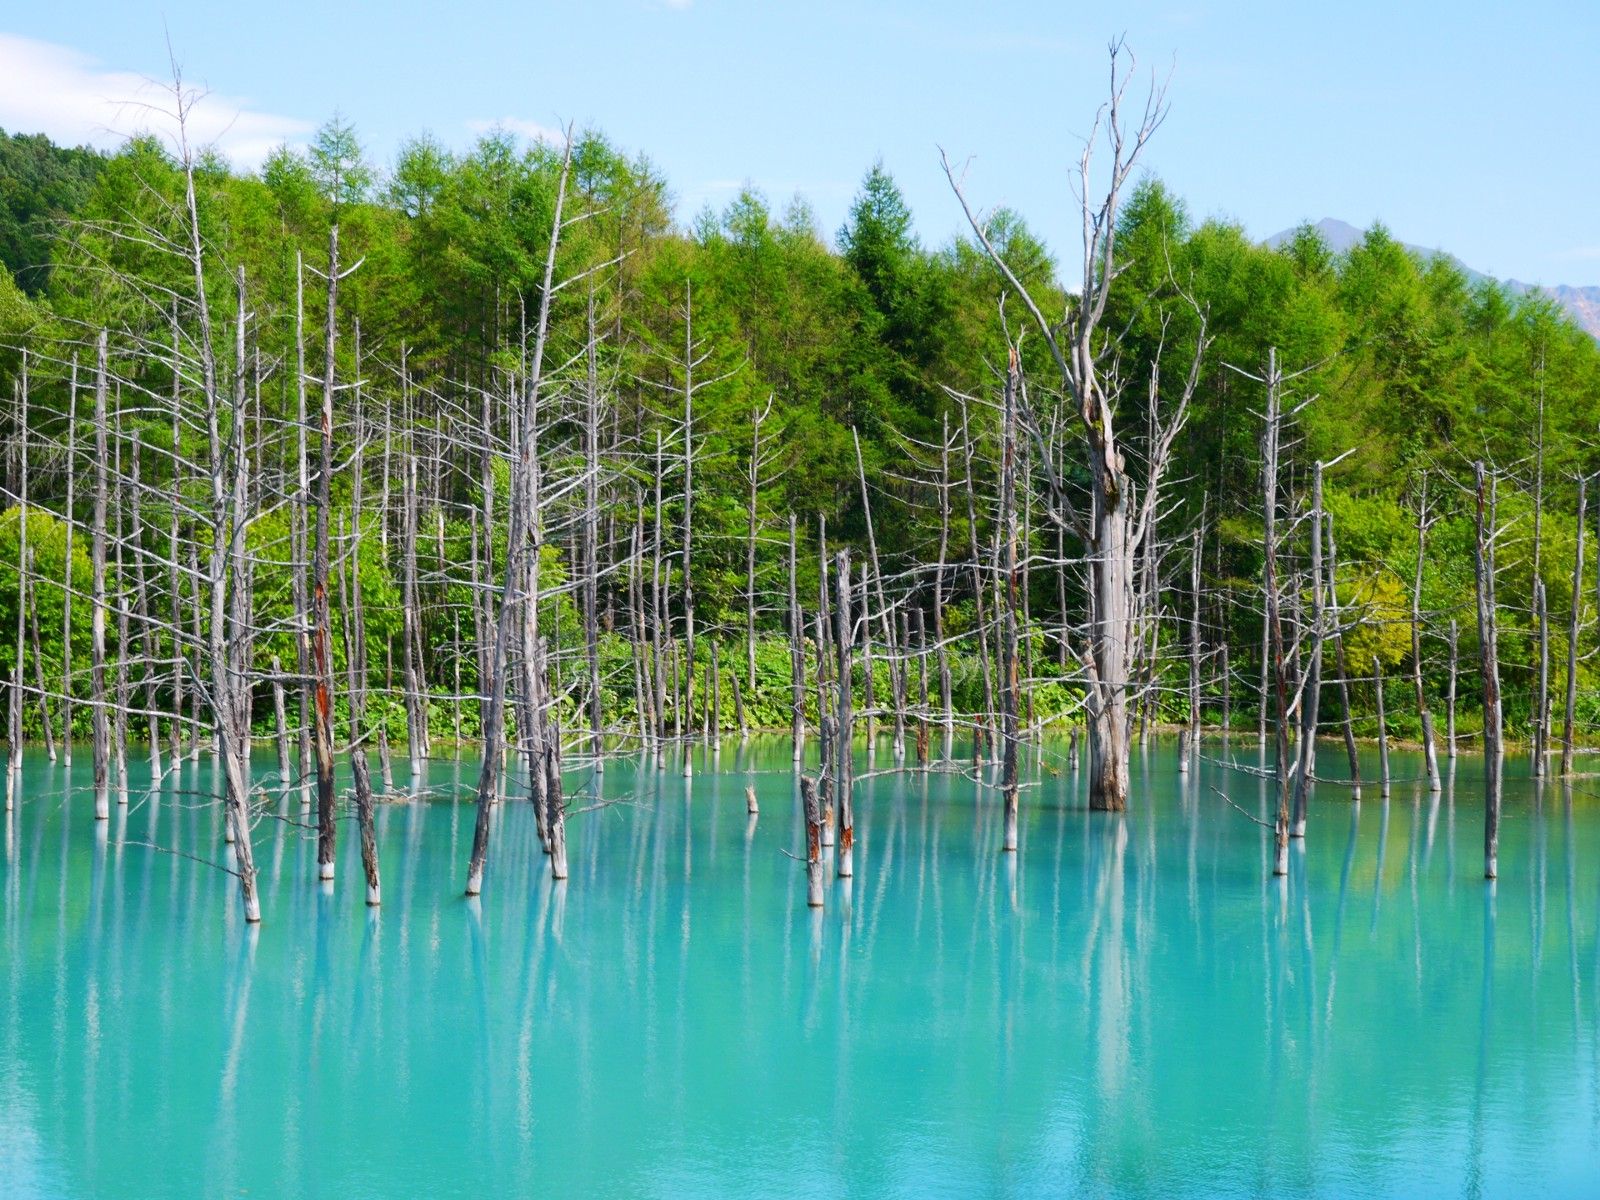 The picturesque Blue Pond in summer